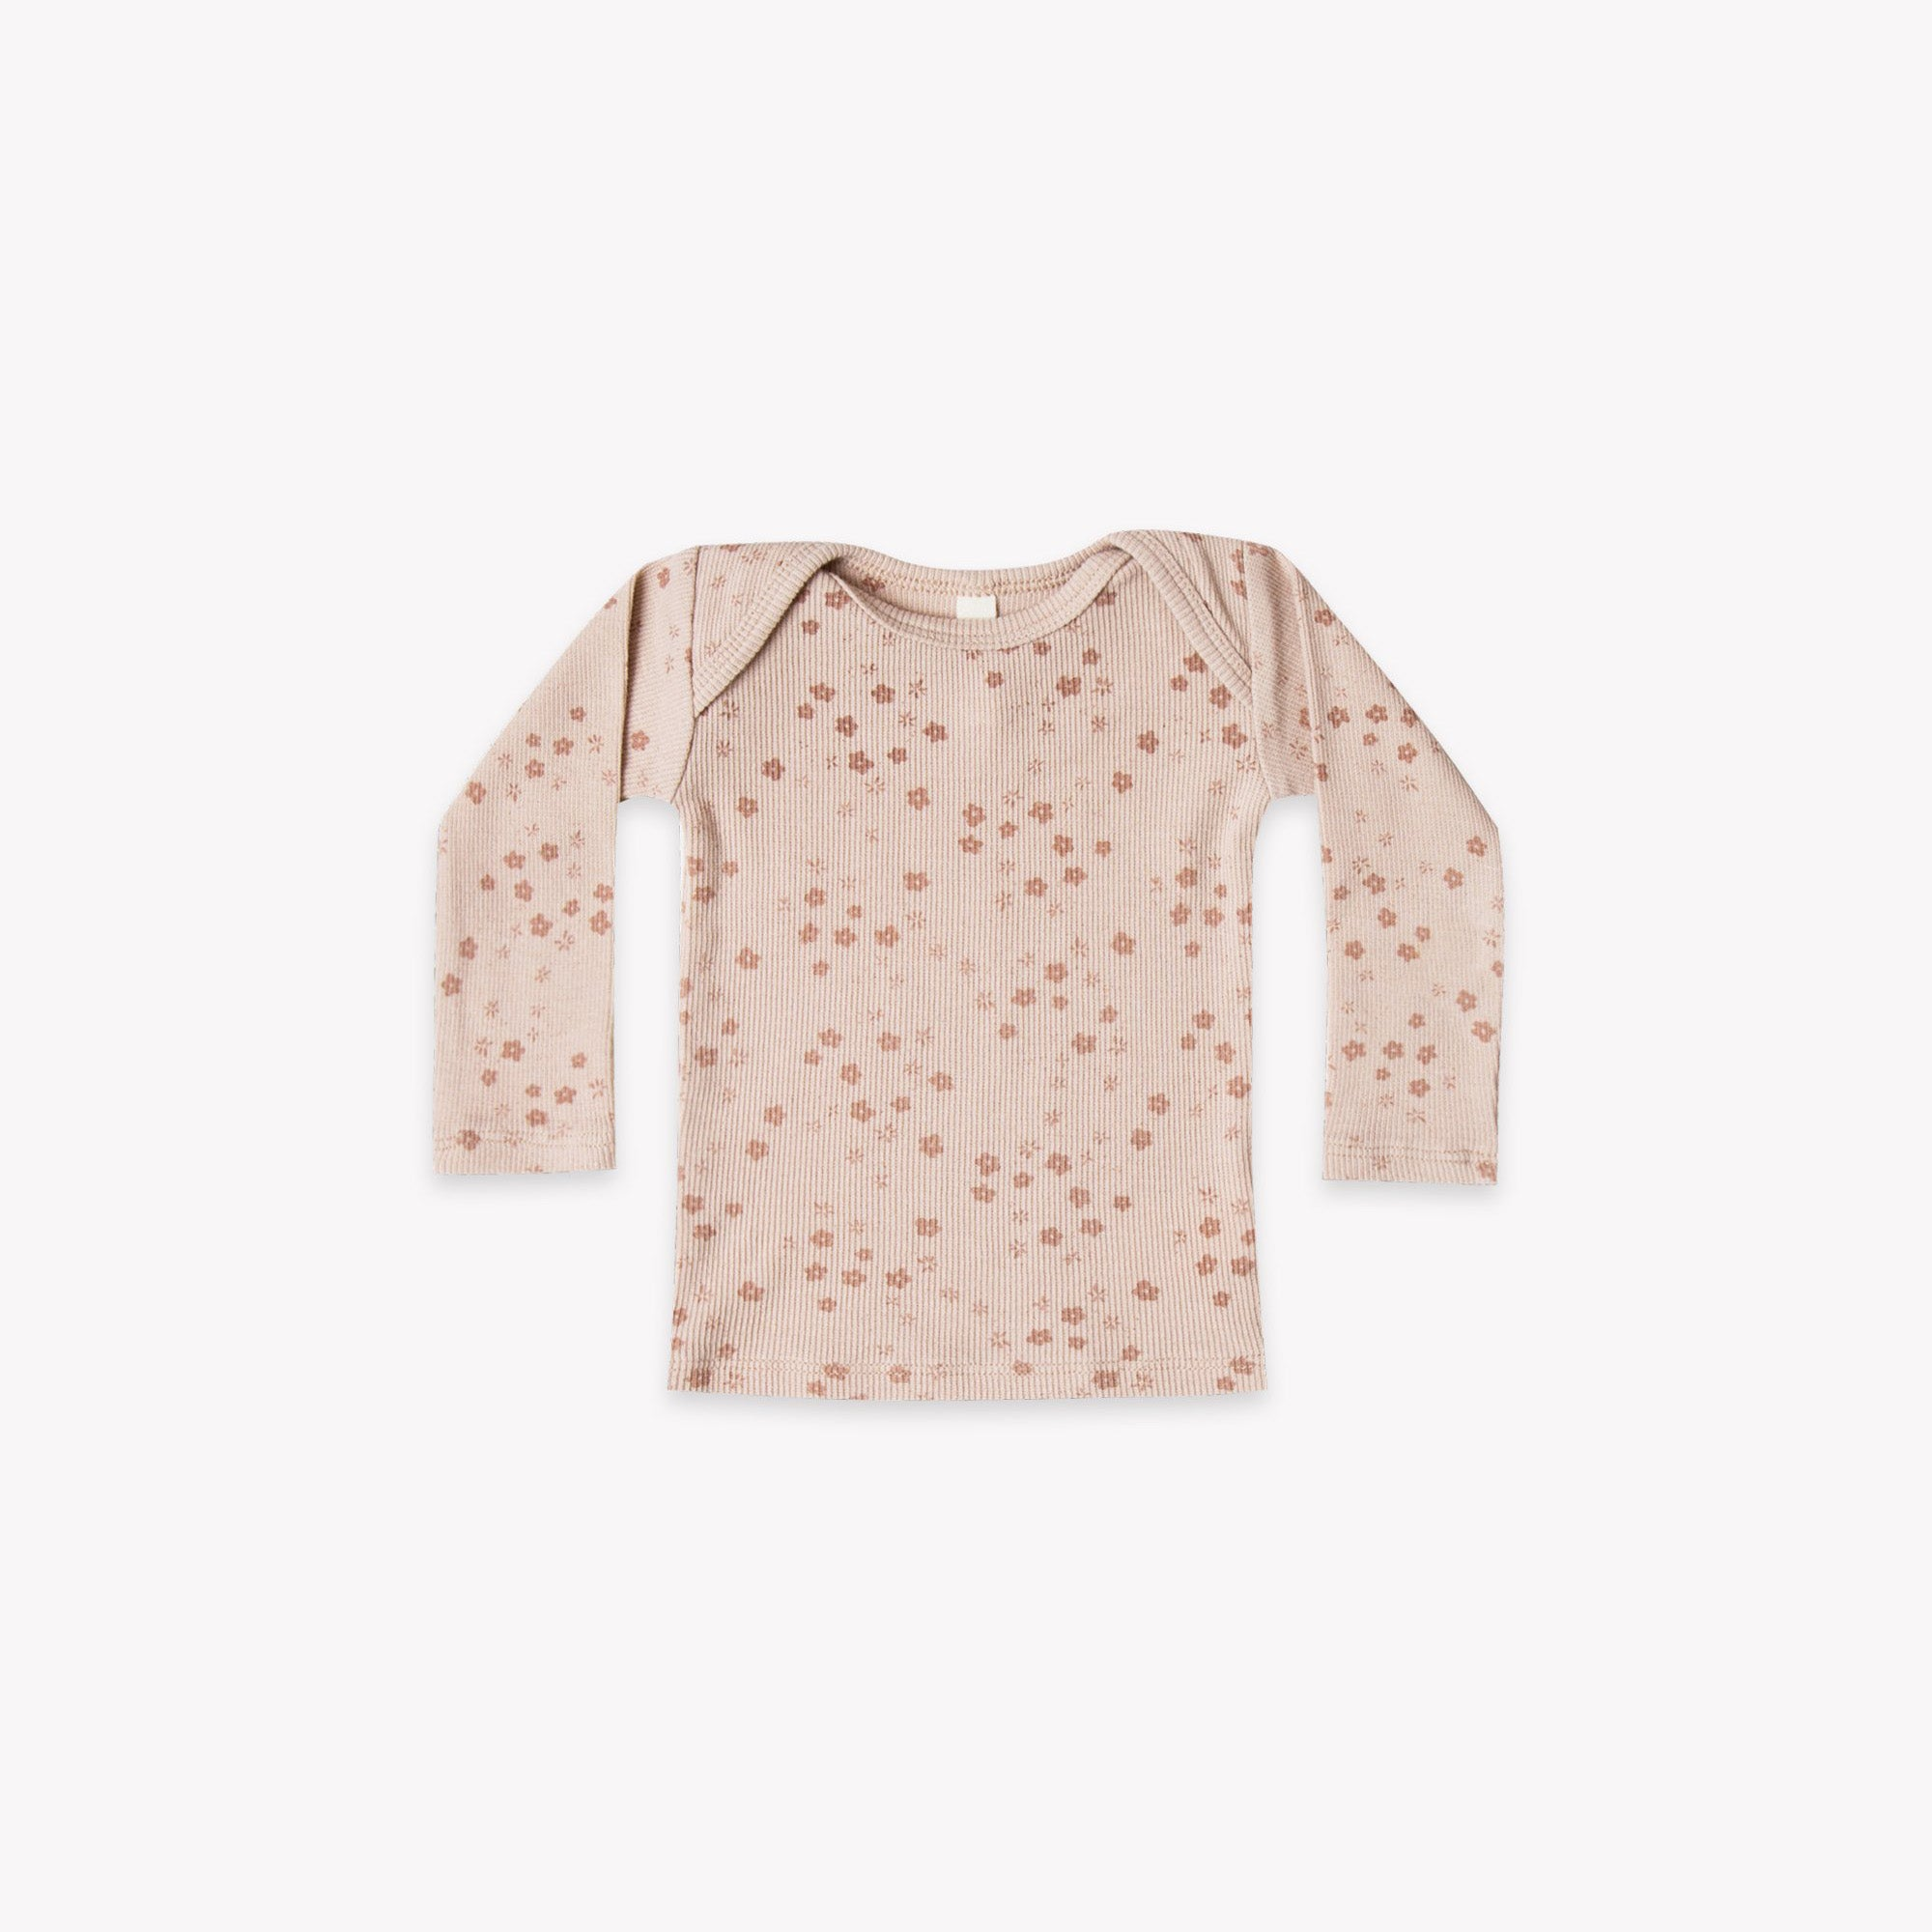 Quincy Mae - Ribbed Lap Tee (Rose)